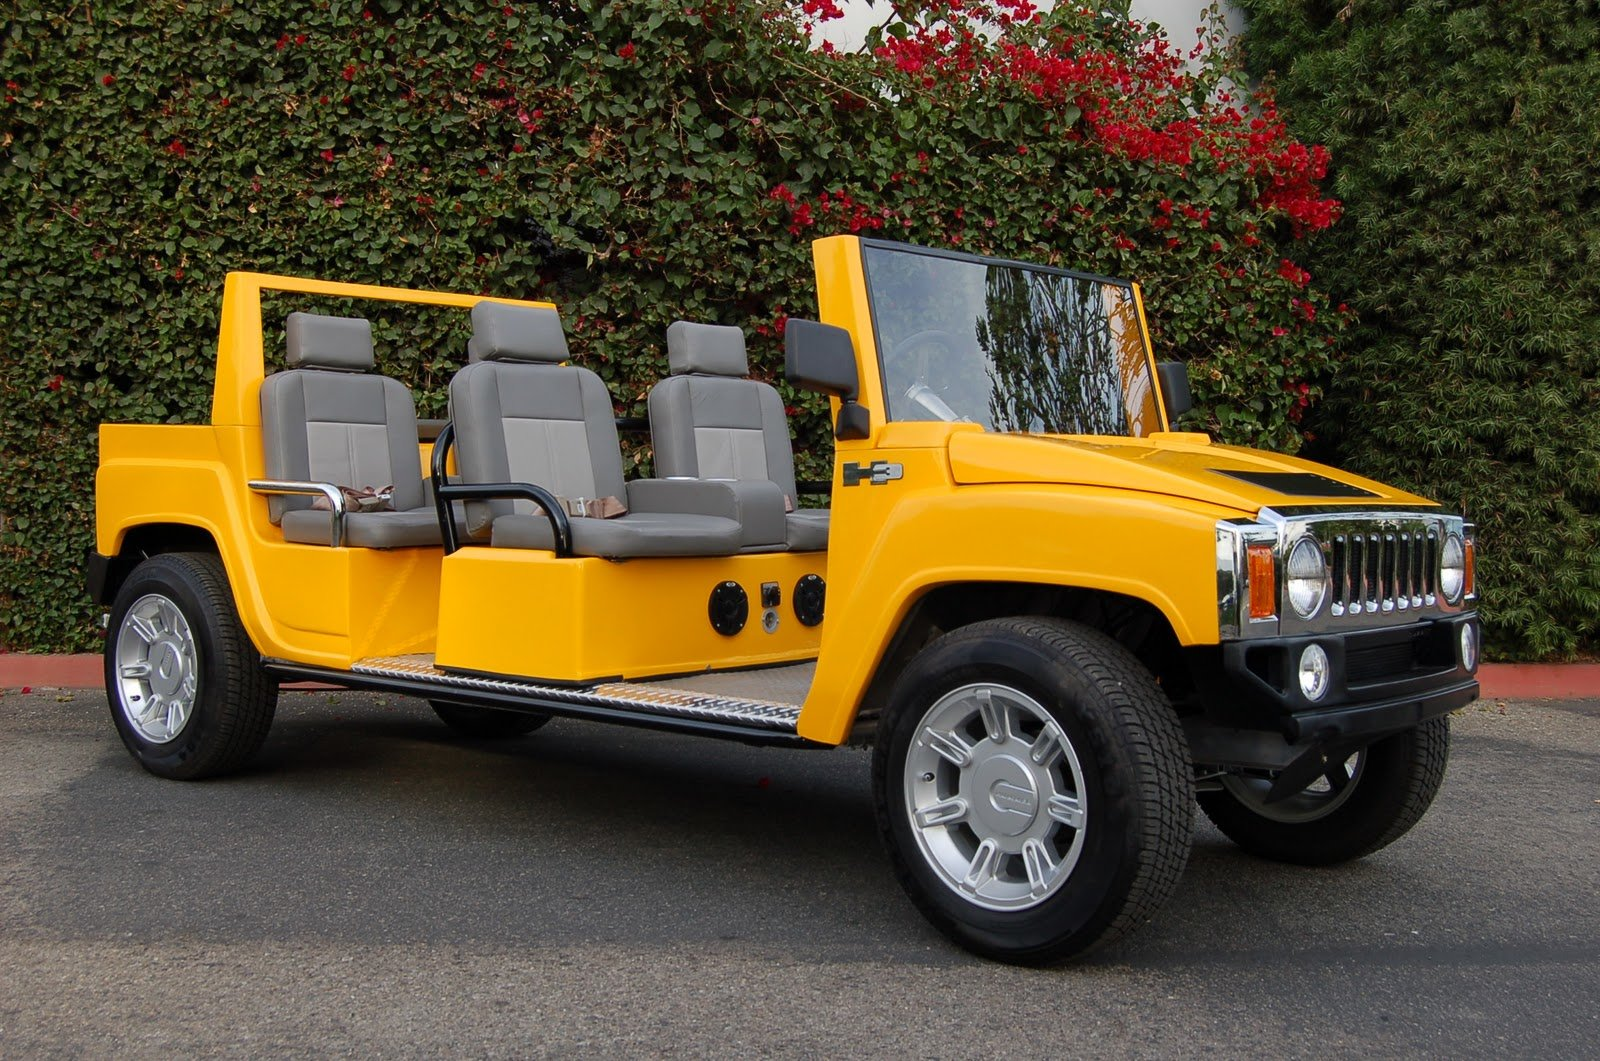 Latest Sports Car Hummer Wallpaper Pictures Images Snaps Free Download